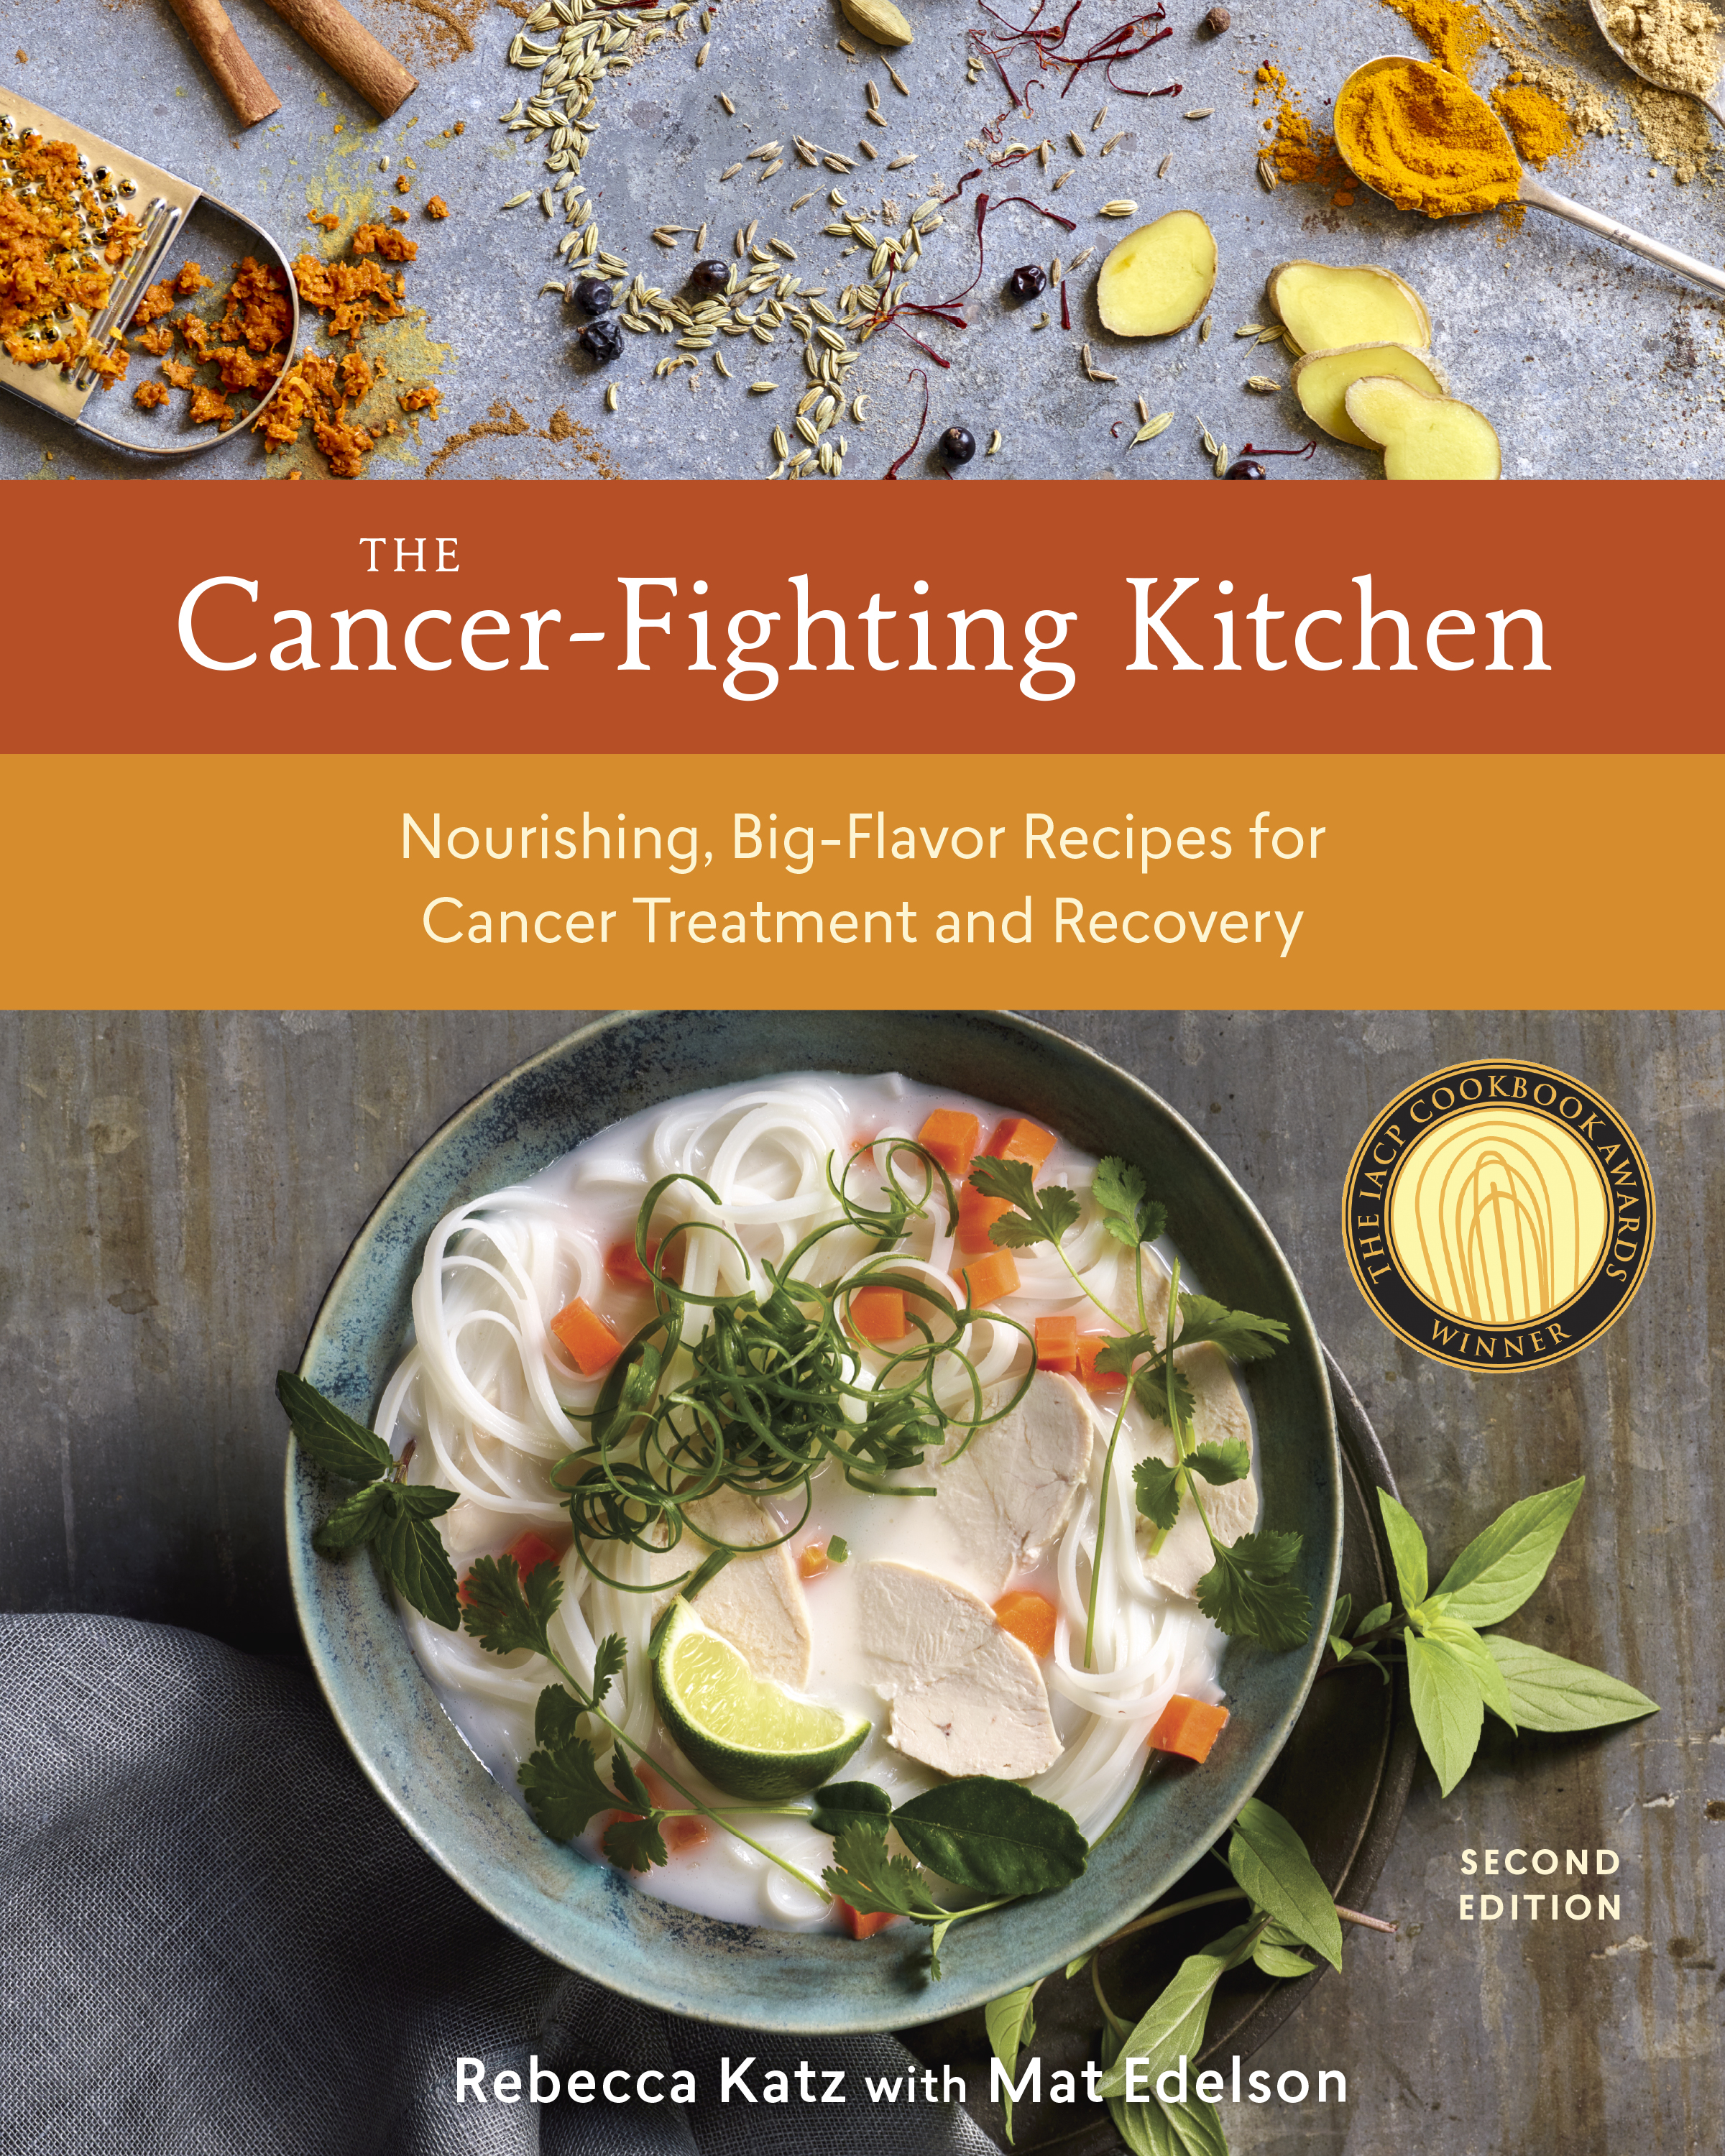 Cancer-Fighting Kitchen: Second Edition: Nourishing, Big-Flavor Recipes for Cancer Treatment and Recovery